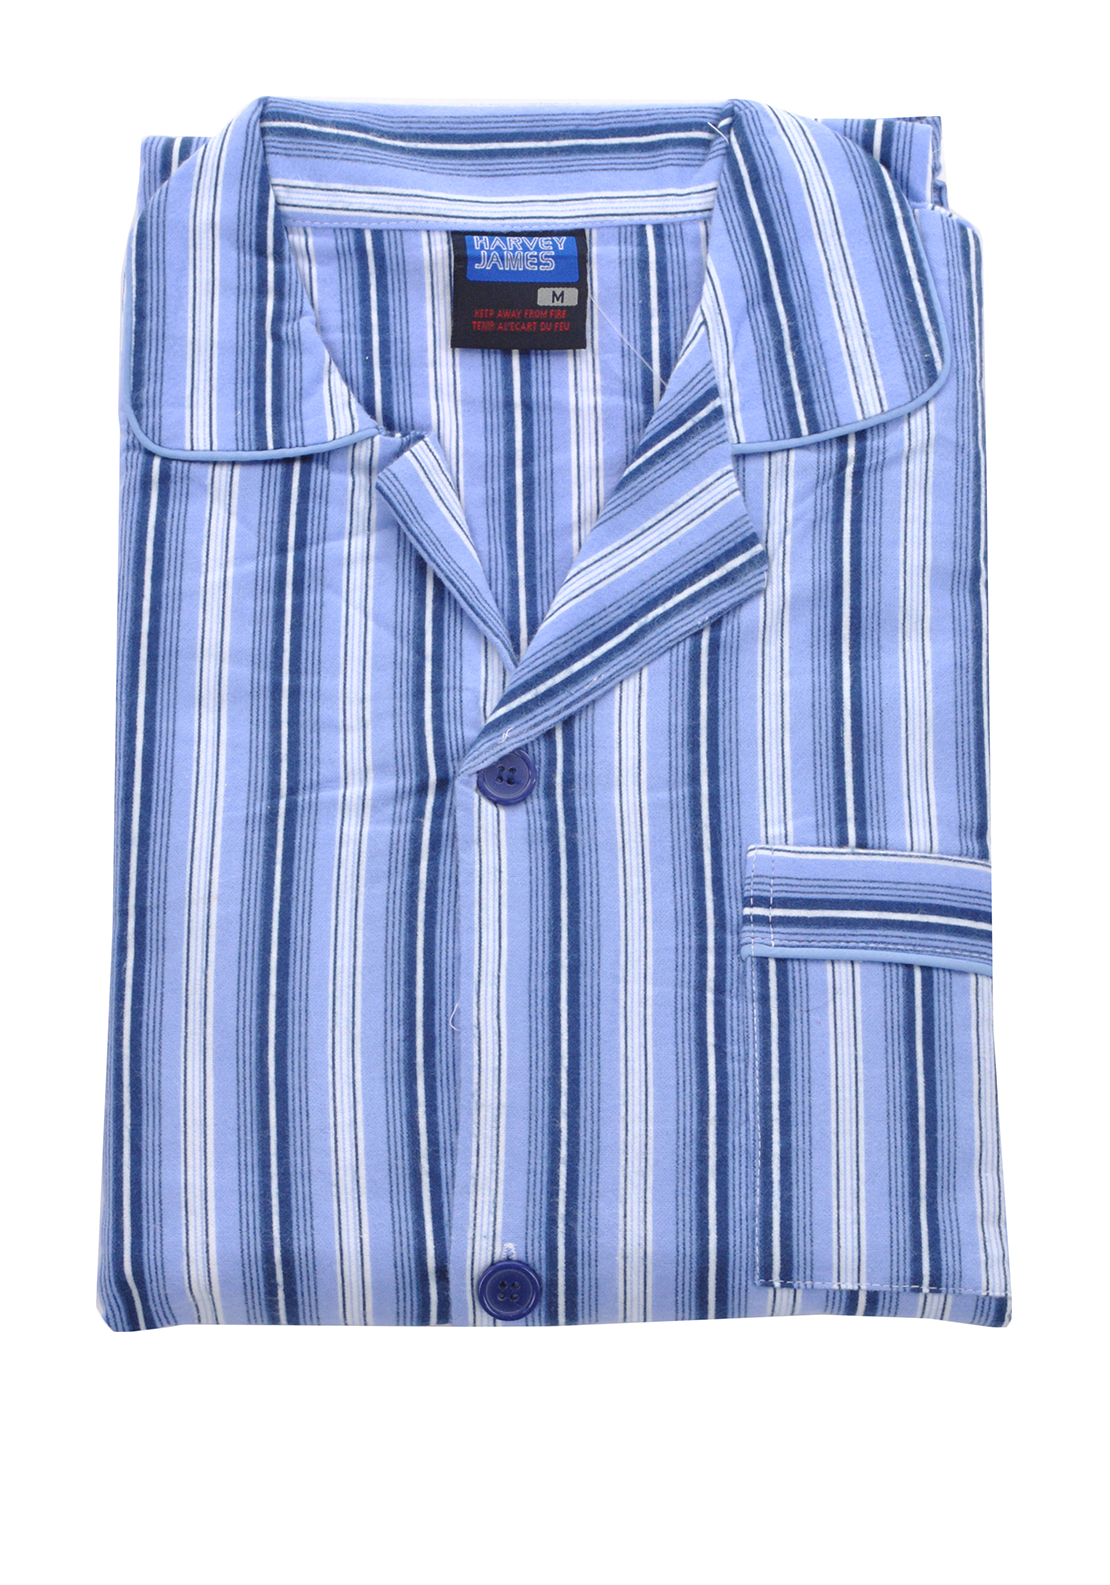 Harvey James Mens Striped Pyjamas, Navy